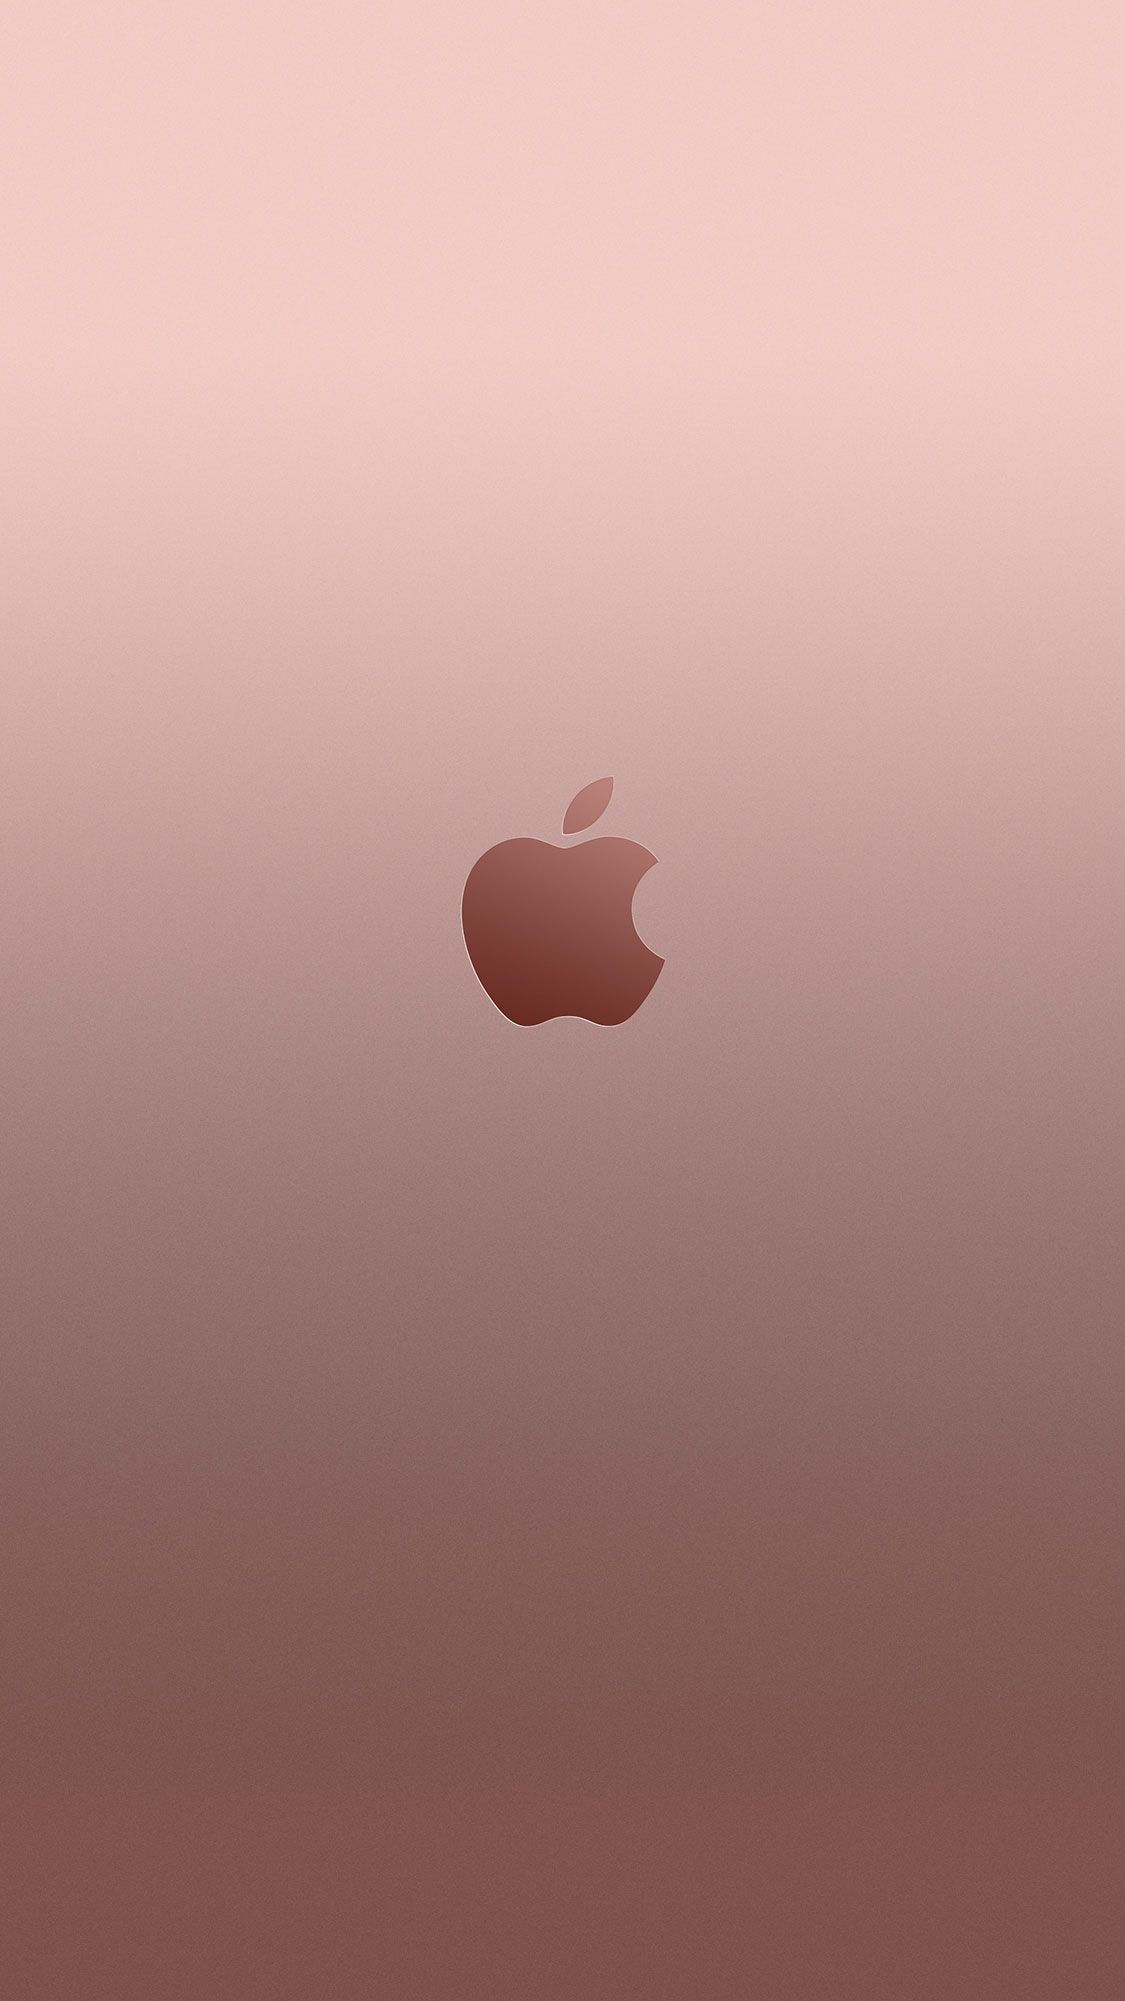 20 New Iphone 6 6s Wallpapers Backgrounds In Hd Quality Iphone 6s Wallpaper Rose Gold Wallpaper Apple Wallpaper